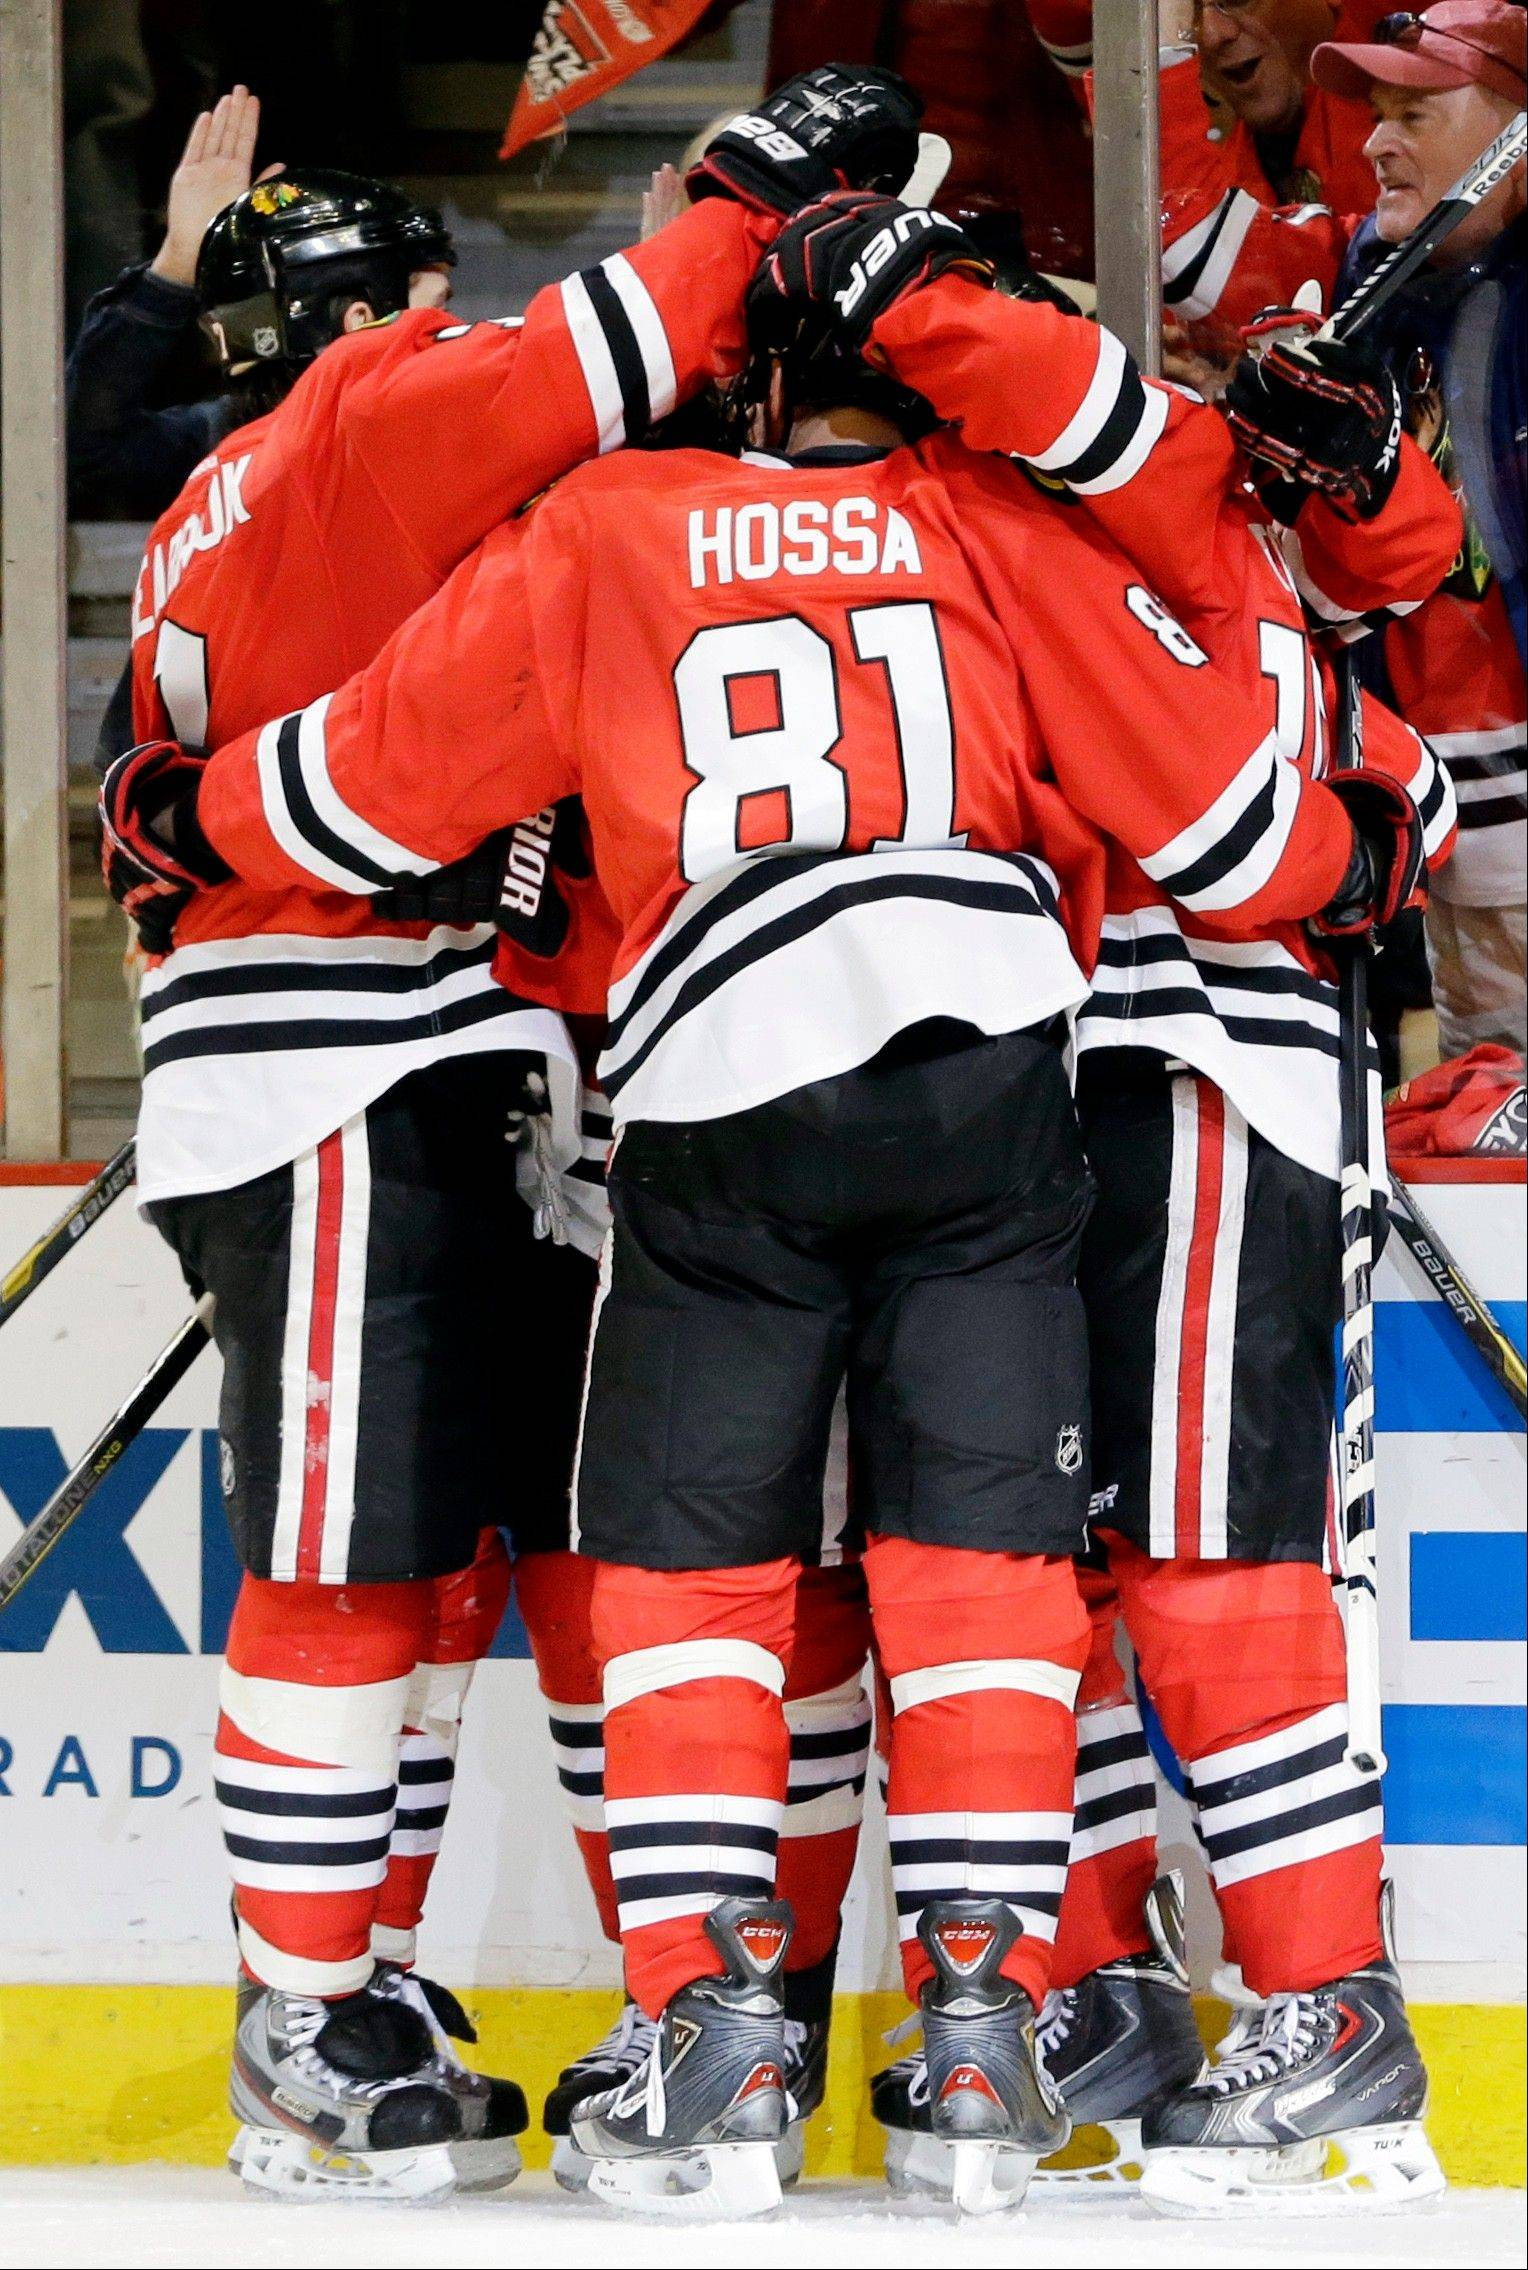 Chicago Blackhawks' Andrew Shaw celebrates with teammates after scoring a goal during the second period of Game 5 of the NHL hockey Stanley Cup playoffs Western Conference semifinals against the Detroit Red Wings in Chicago, Saturday, May 25, 2013.